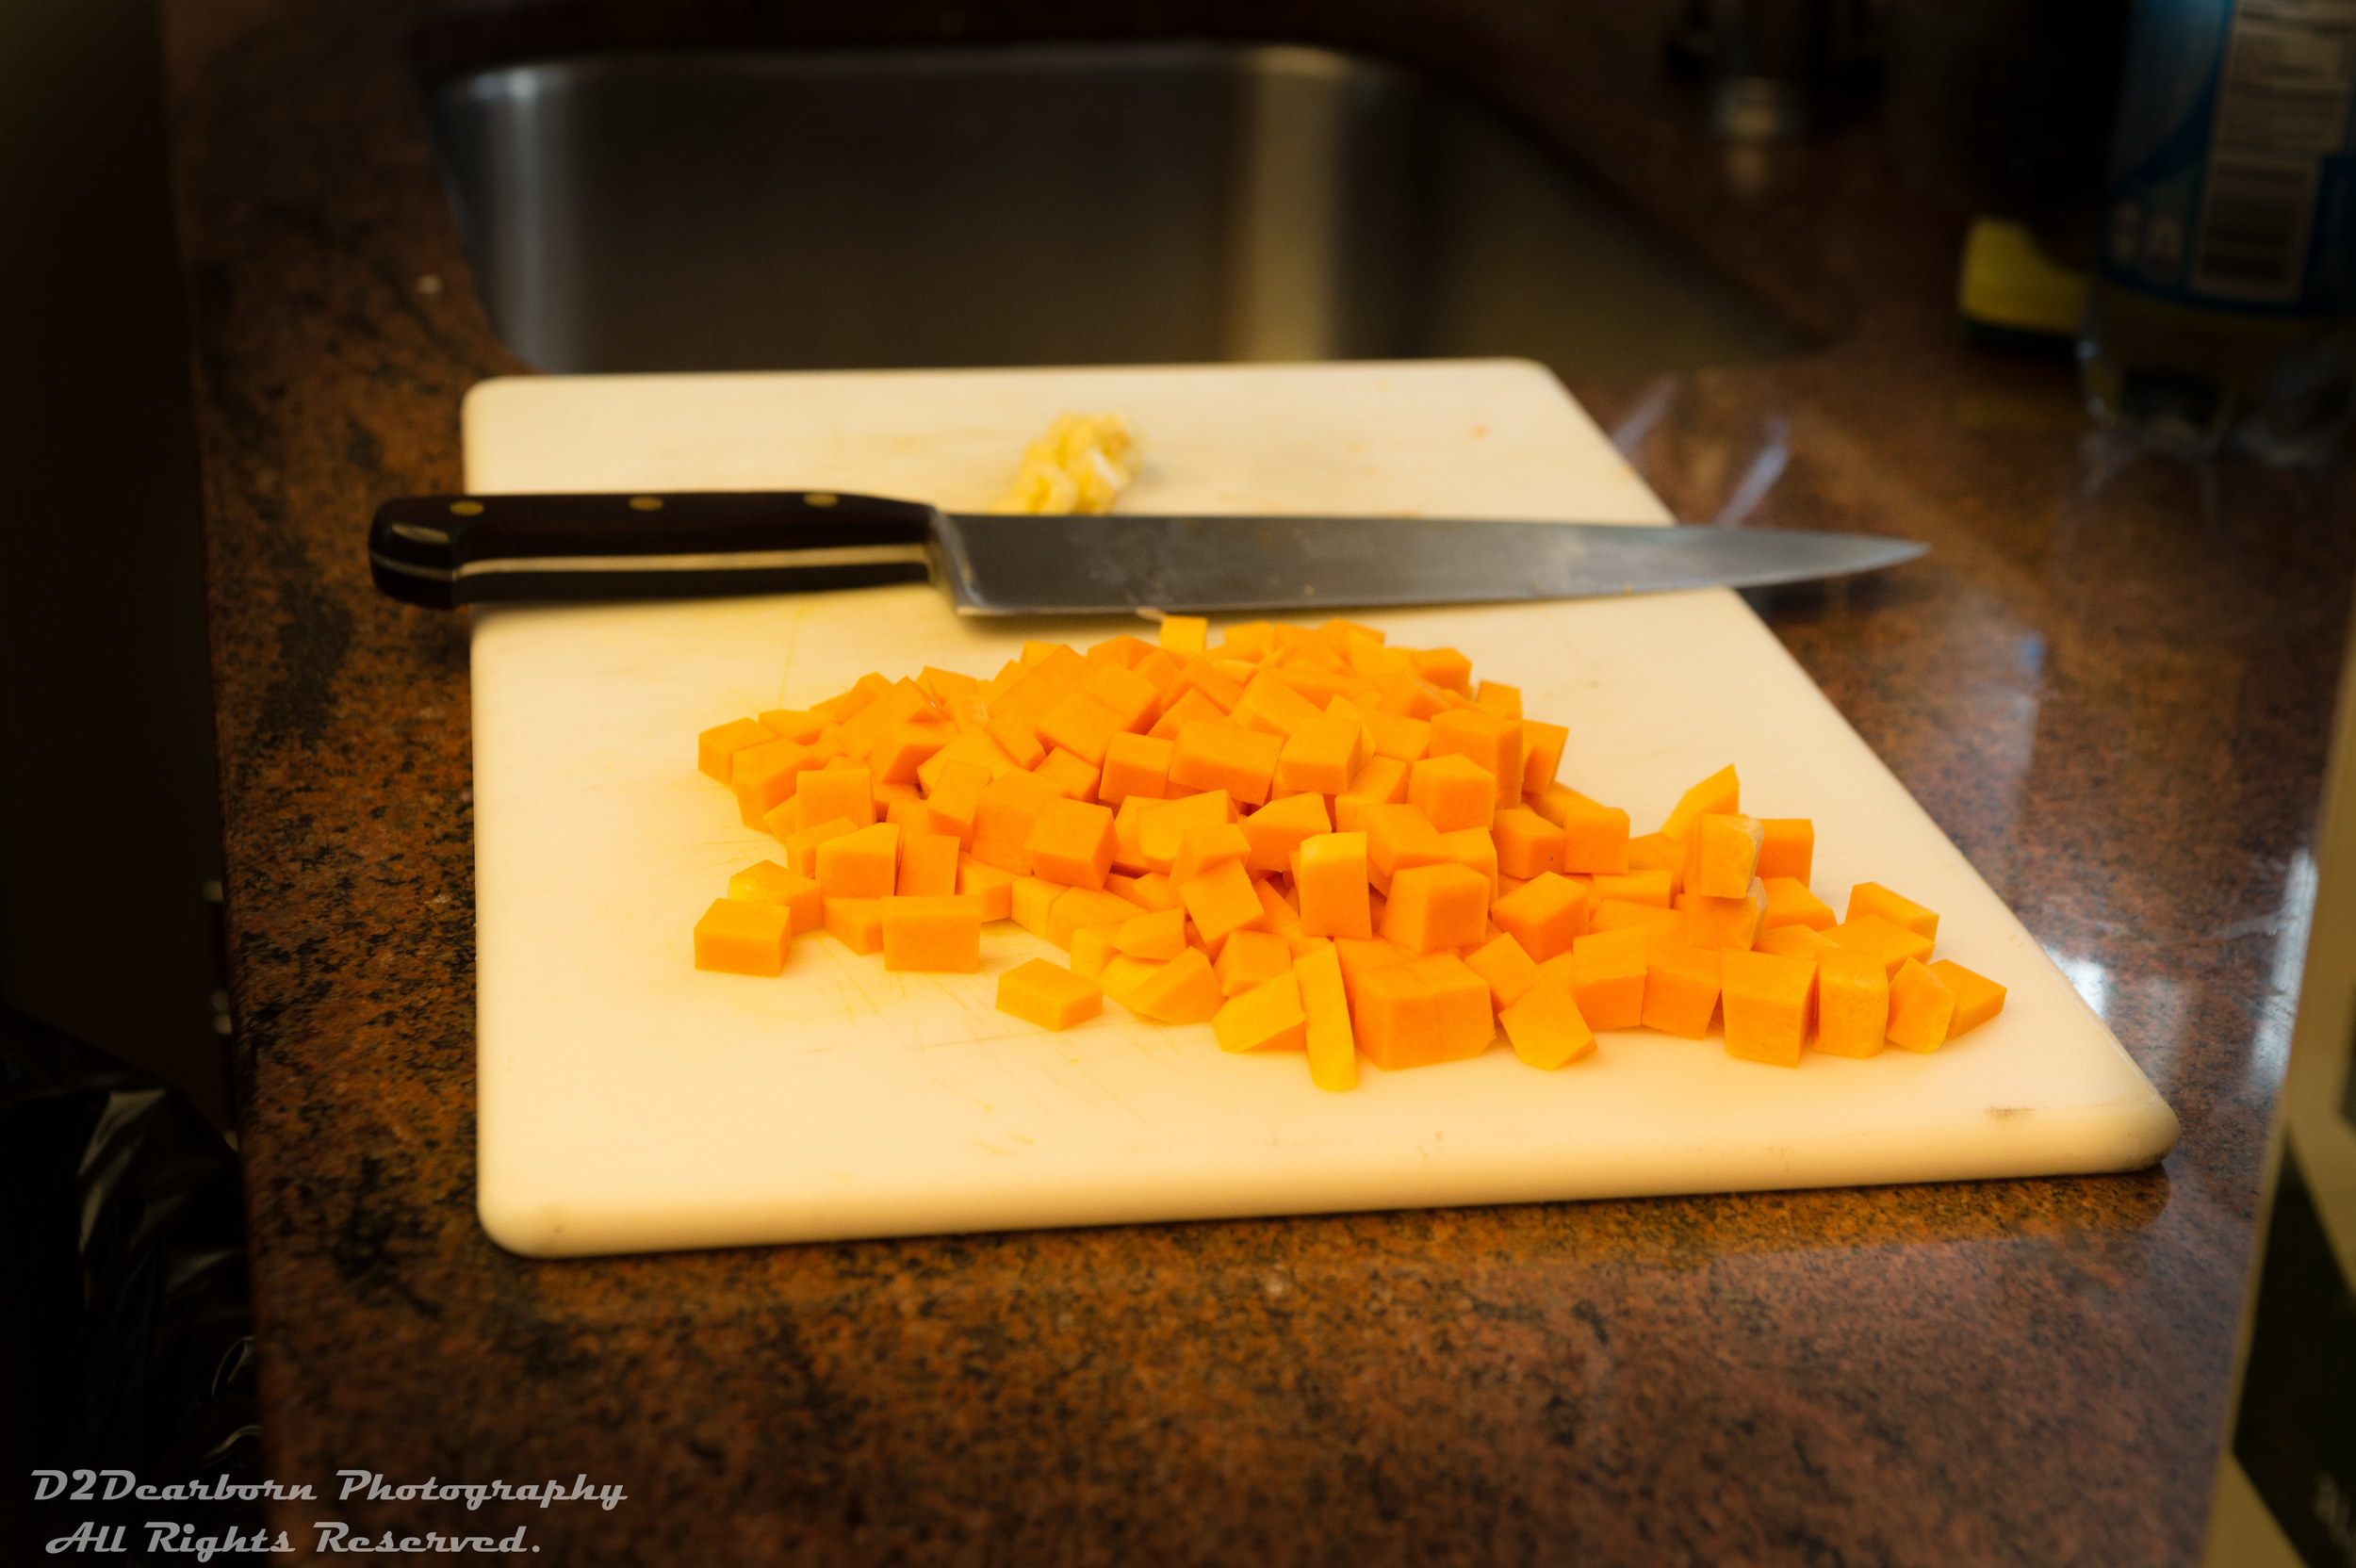 Butternut squash prepped and ready for the frittata!